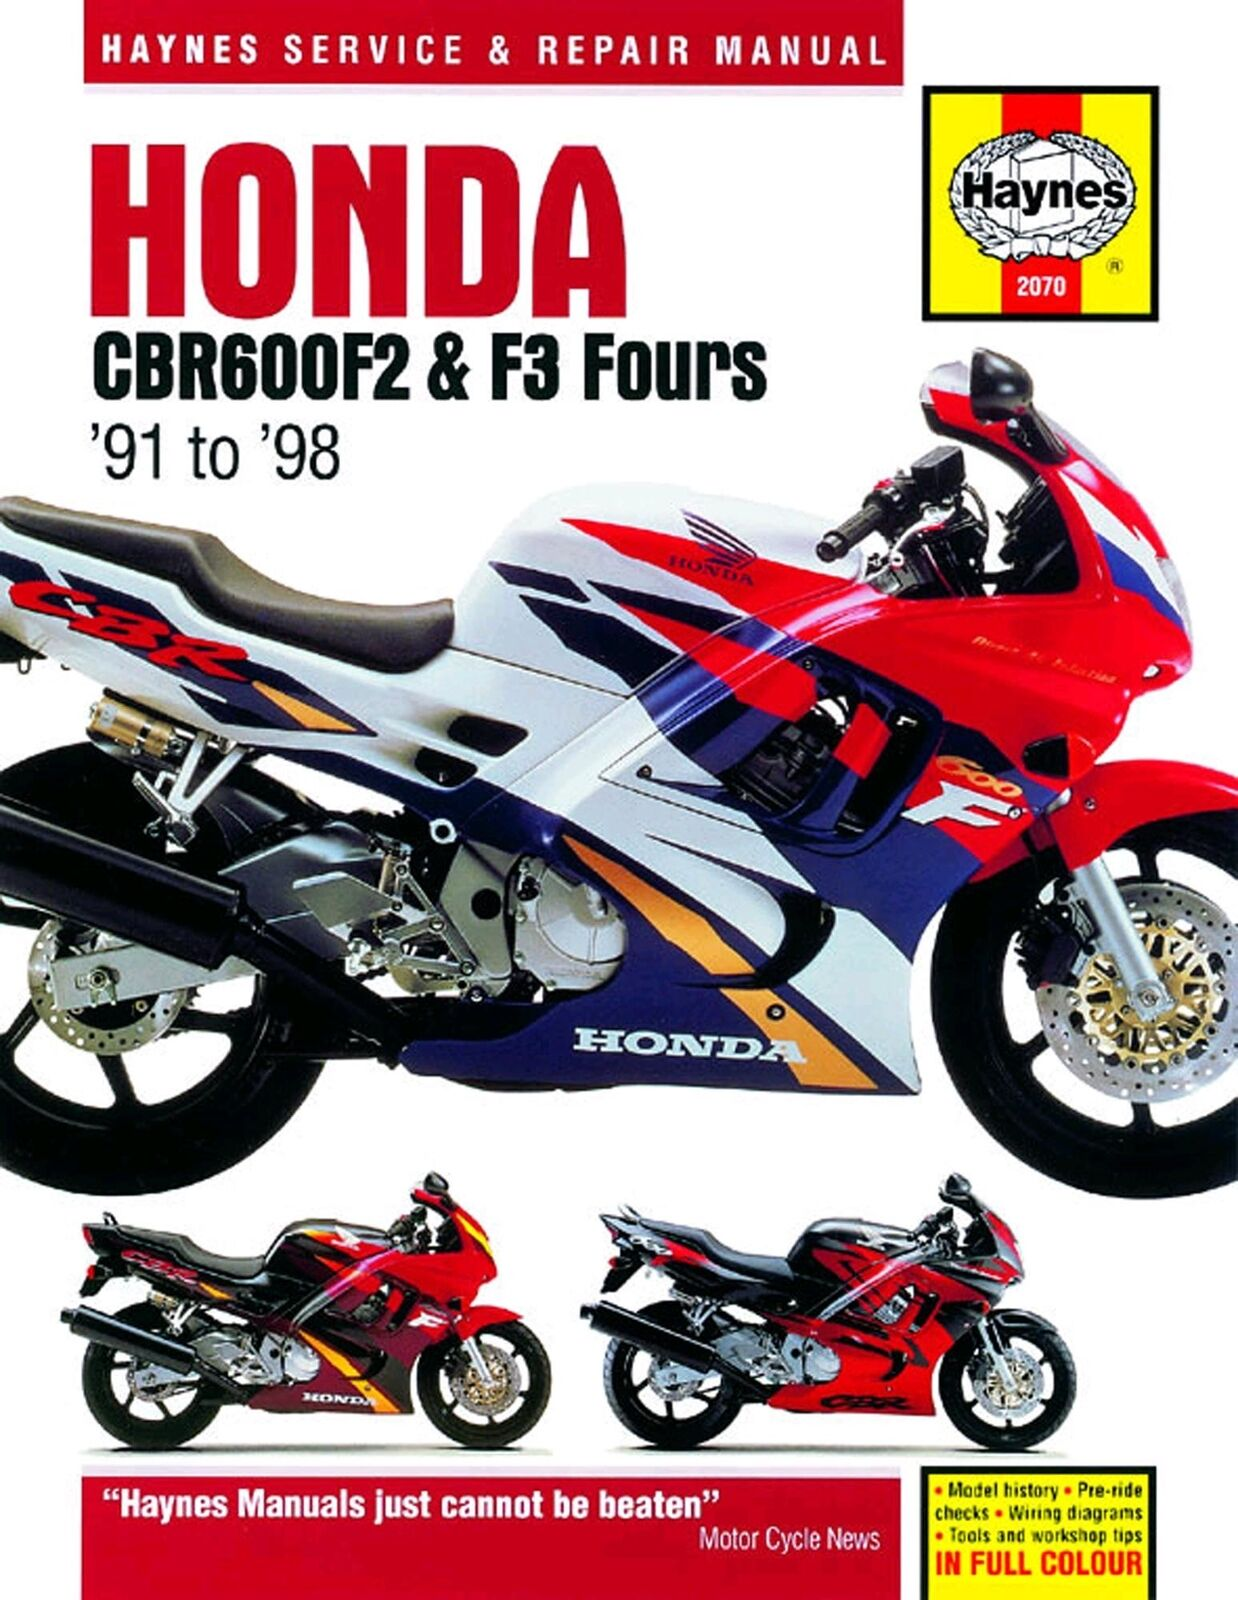 Haynes Service Repair Manual Honda CBR600F2 CBR600F3 Fours 1991-1998  Maintenance 1 of 1 See More